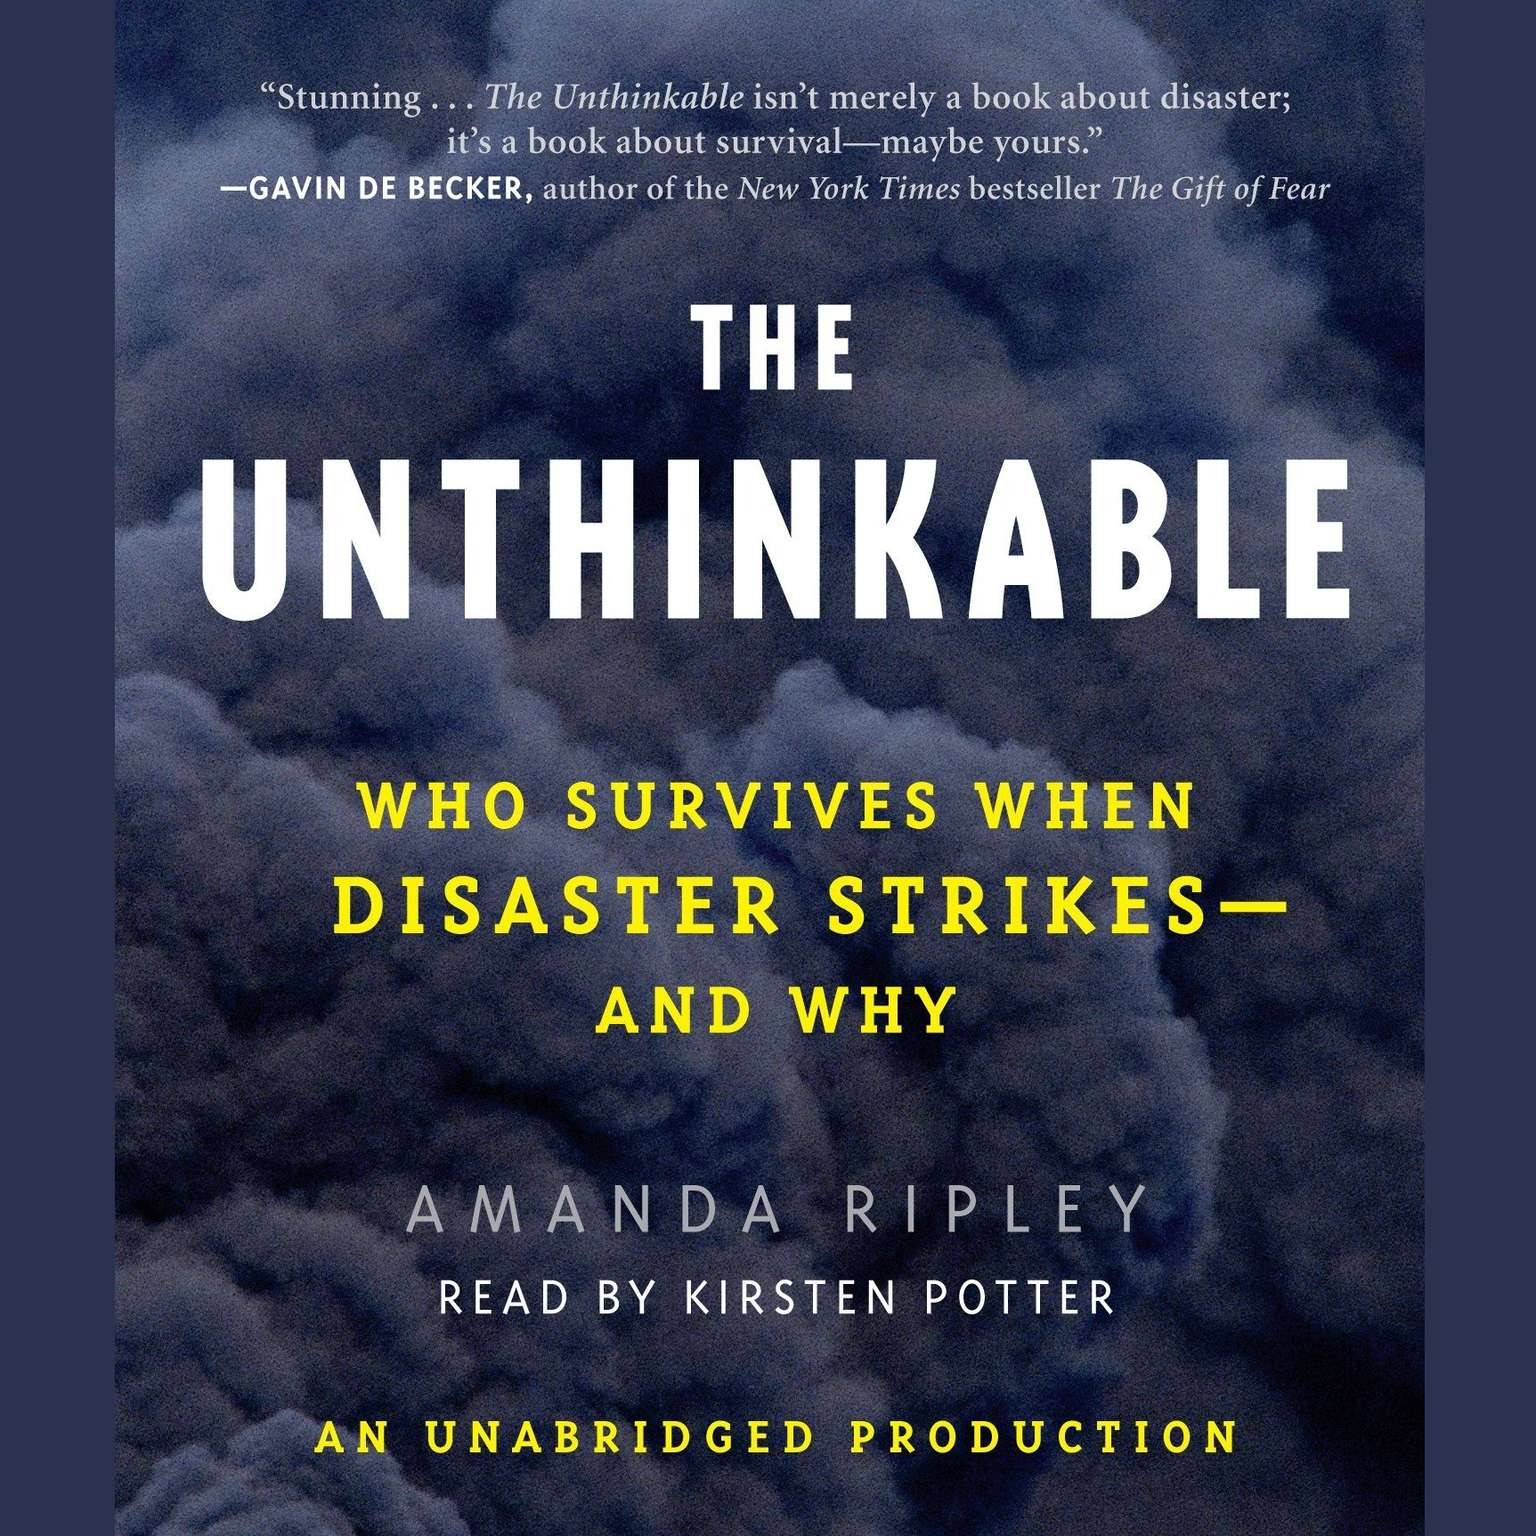 Printable The Unthinkable: Who Survives When Disaster Strikes - and Why Audiobook Cover Art